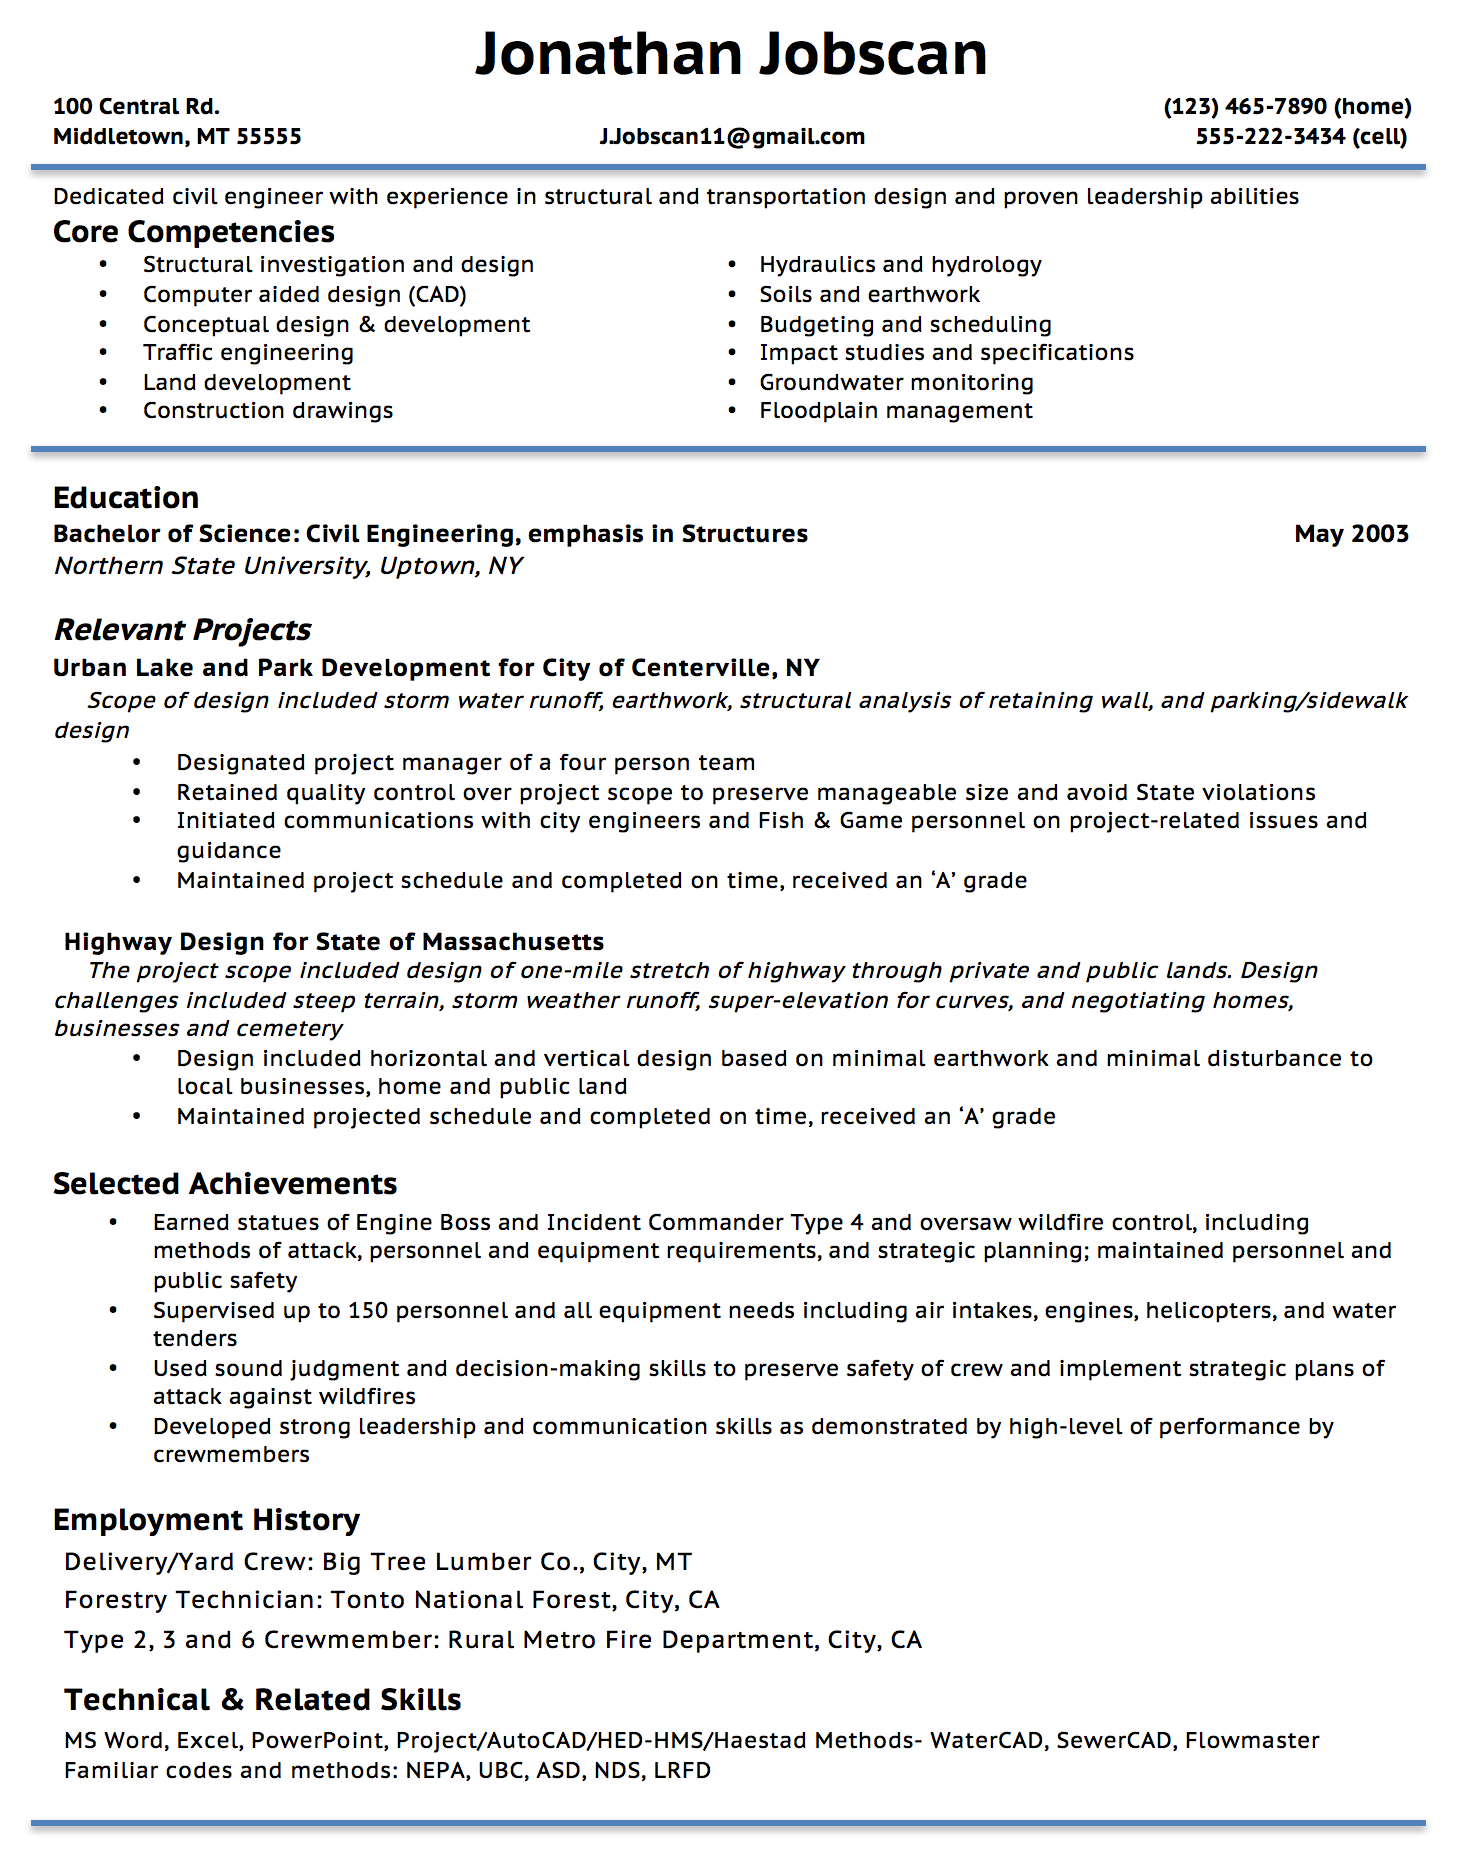 Opposenewapstandardsus  Scenic Resume Writing Guide  Jobscan With Licious Example Of A Functional Resume Format With Delectable Career Change Resume Template Also Client Services Resume In Addition High School Resumes For College And Patient Account Representative Resume As Well As Personal Resume Examples Additionally Rn Case Manager Resume From Jobscanco With Opposenewapstandardsus  Licious Resume Writing Guide  Jobscan With Delectable Example Of A Functional Resume Format And Scenic Career Change Resume Template Also Client Services Resume In Addition High School Resumes For College From Jobscanco